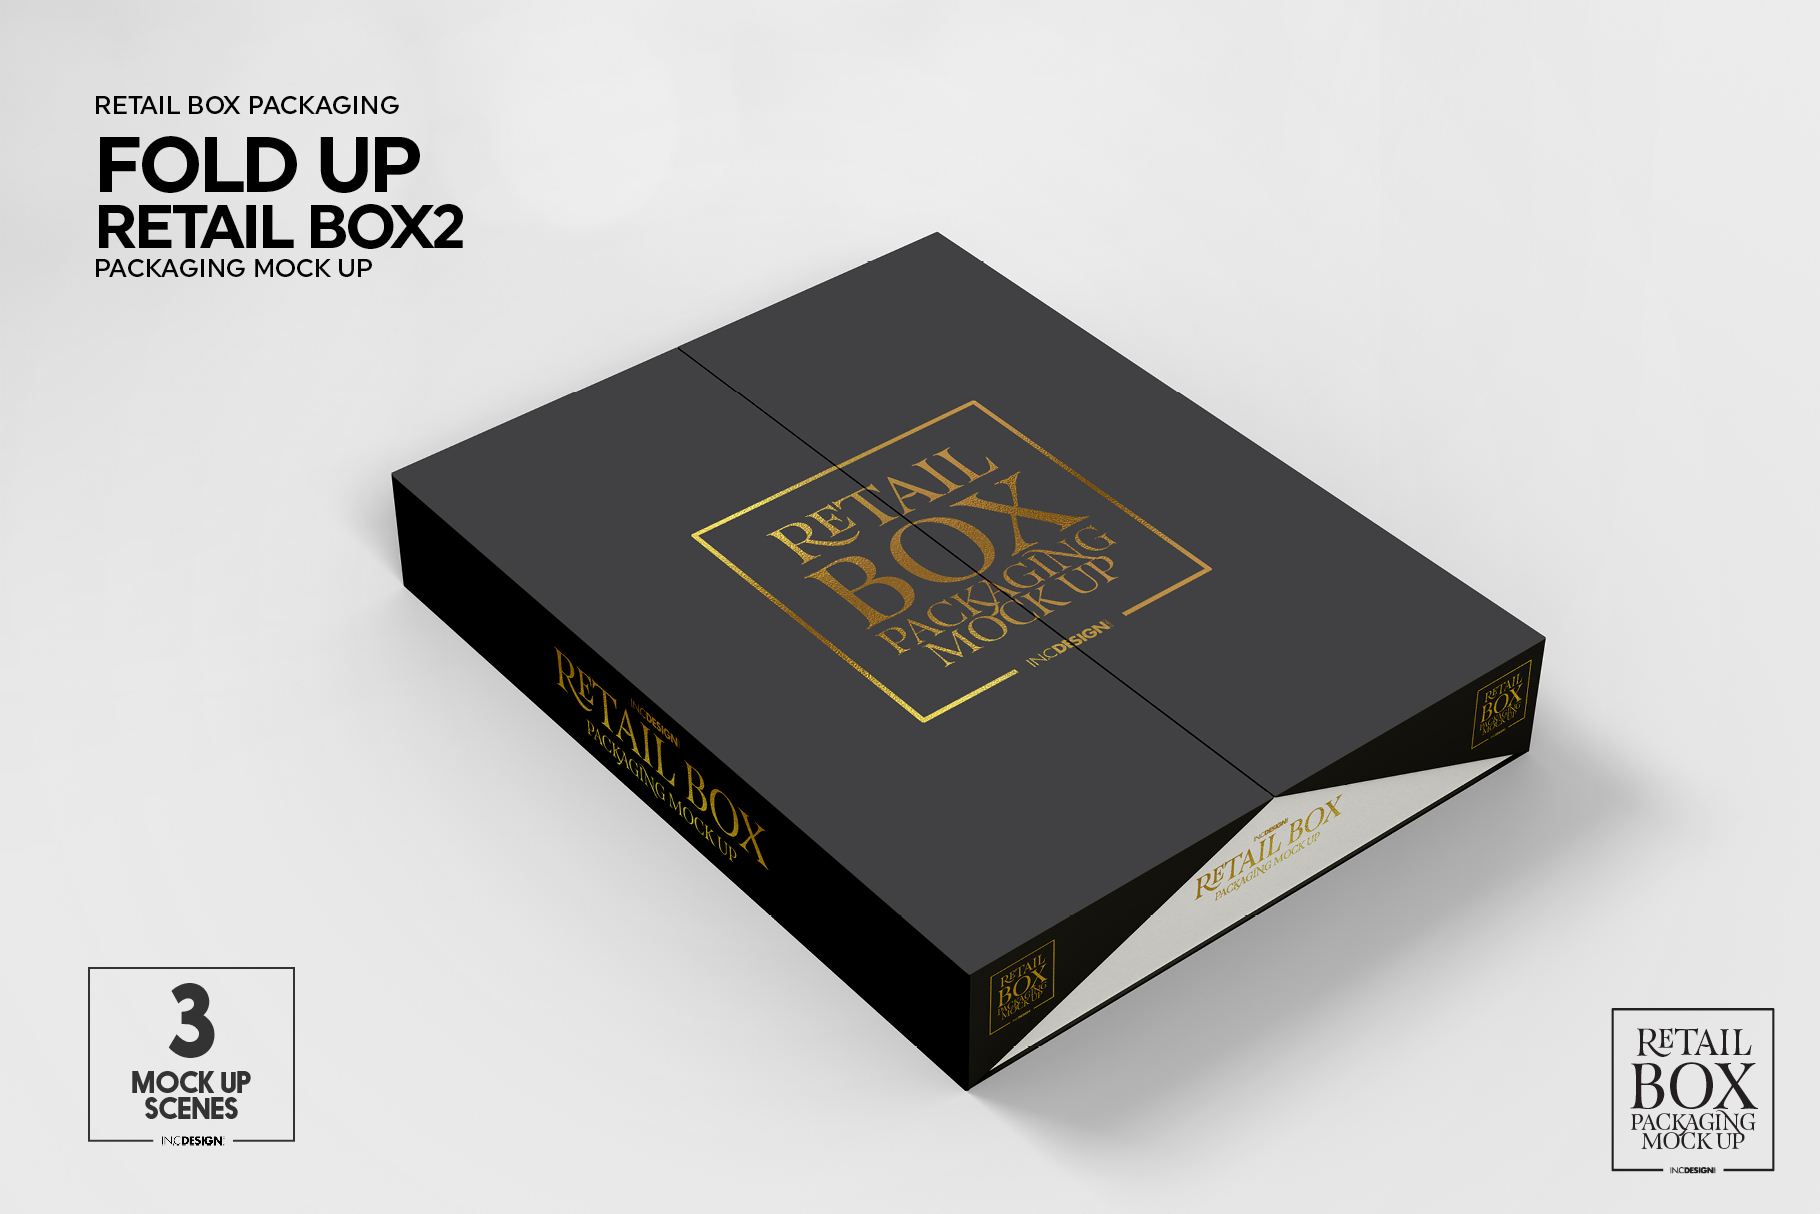 Fold Up Retail Thin Box Packaging Mockup example image 3